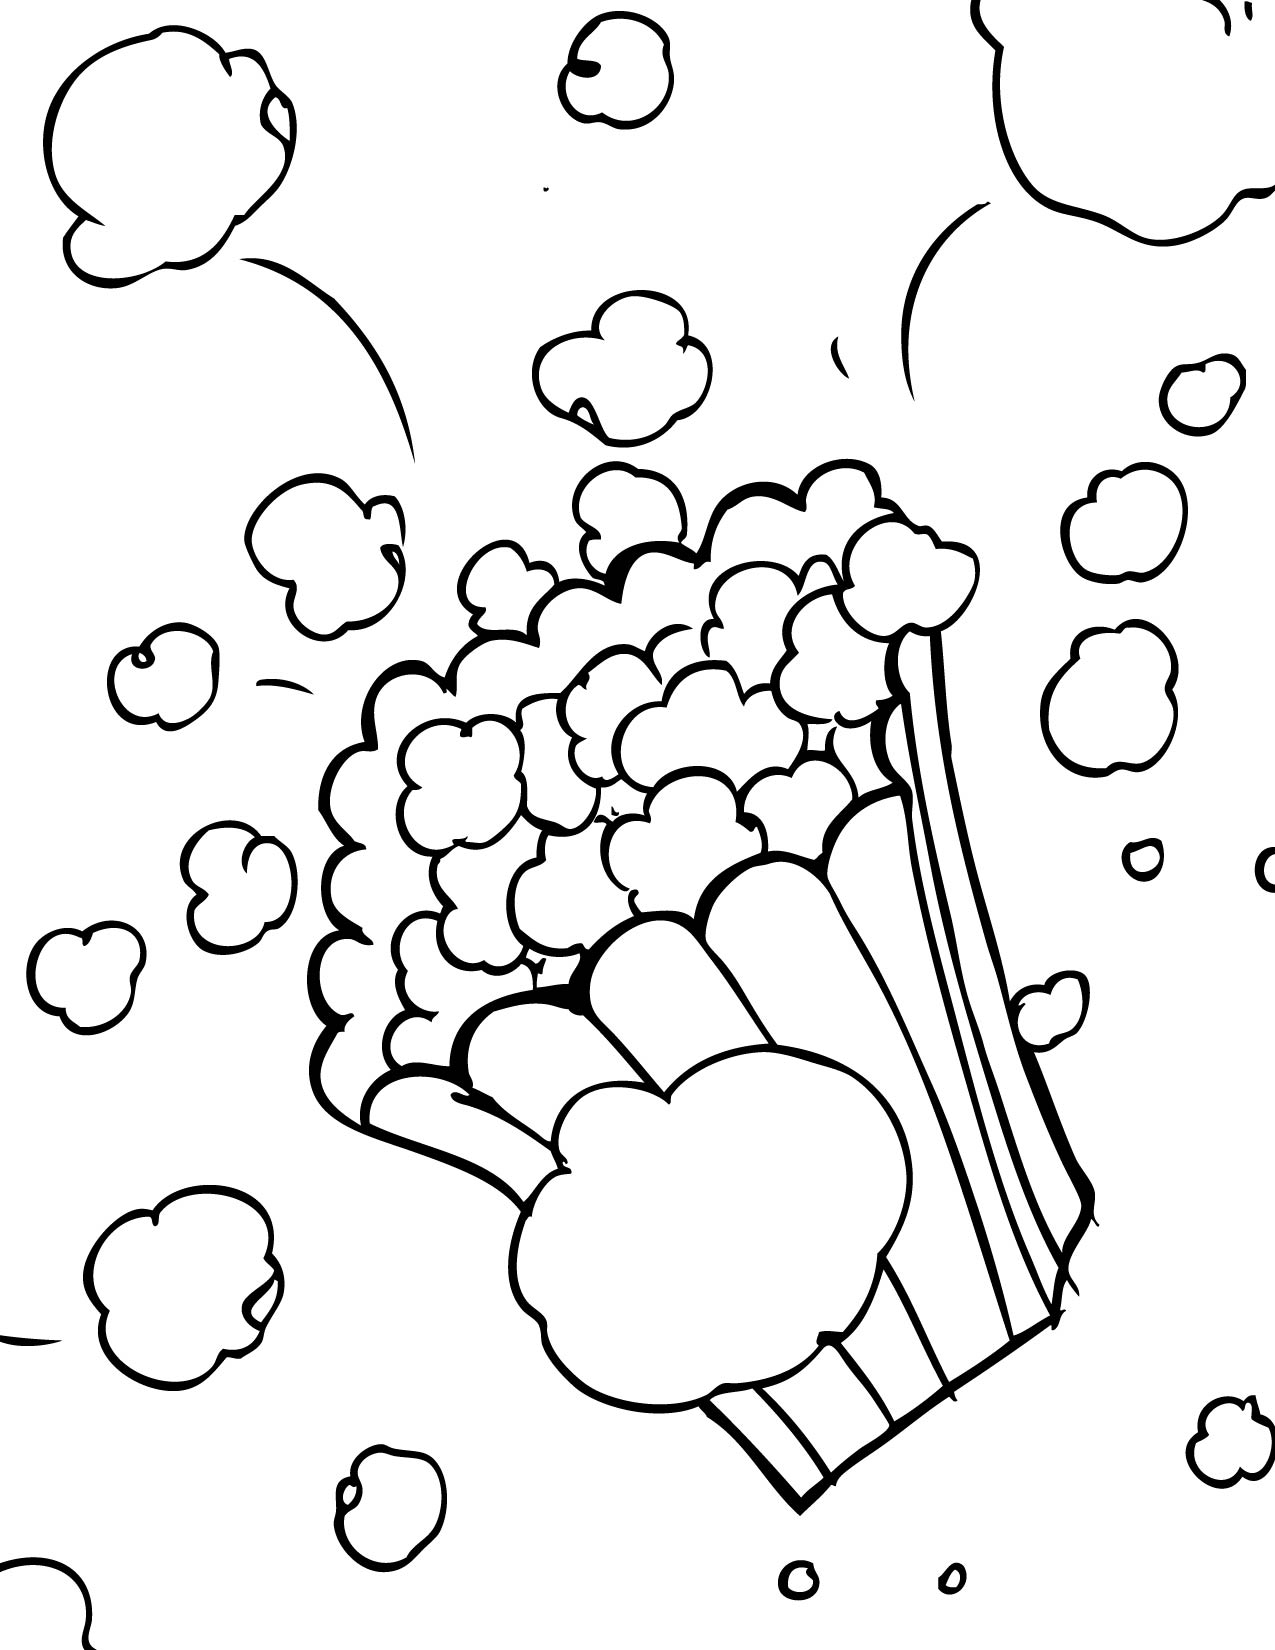 popcorn coloring pictures popcorn coloring free transparent clipart clipartkey pictures coloring popcorn